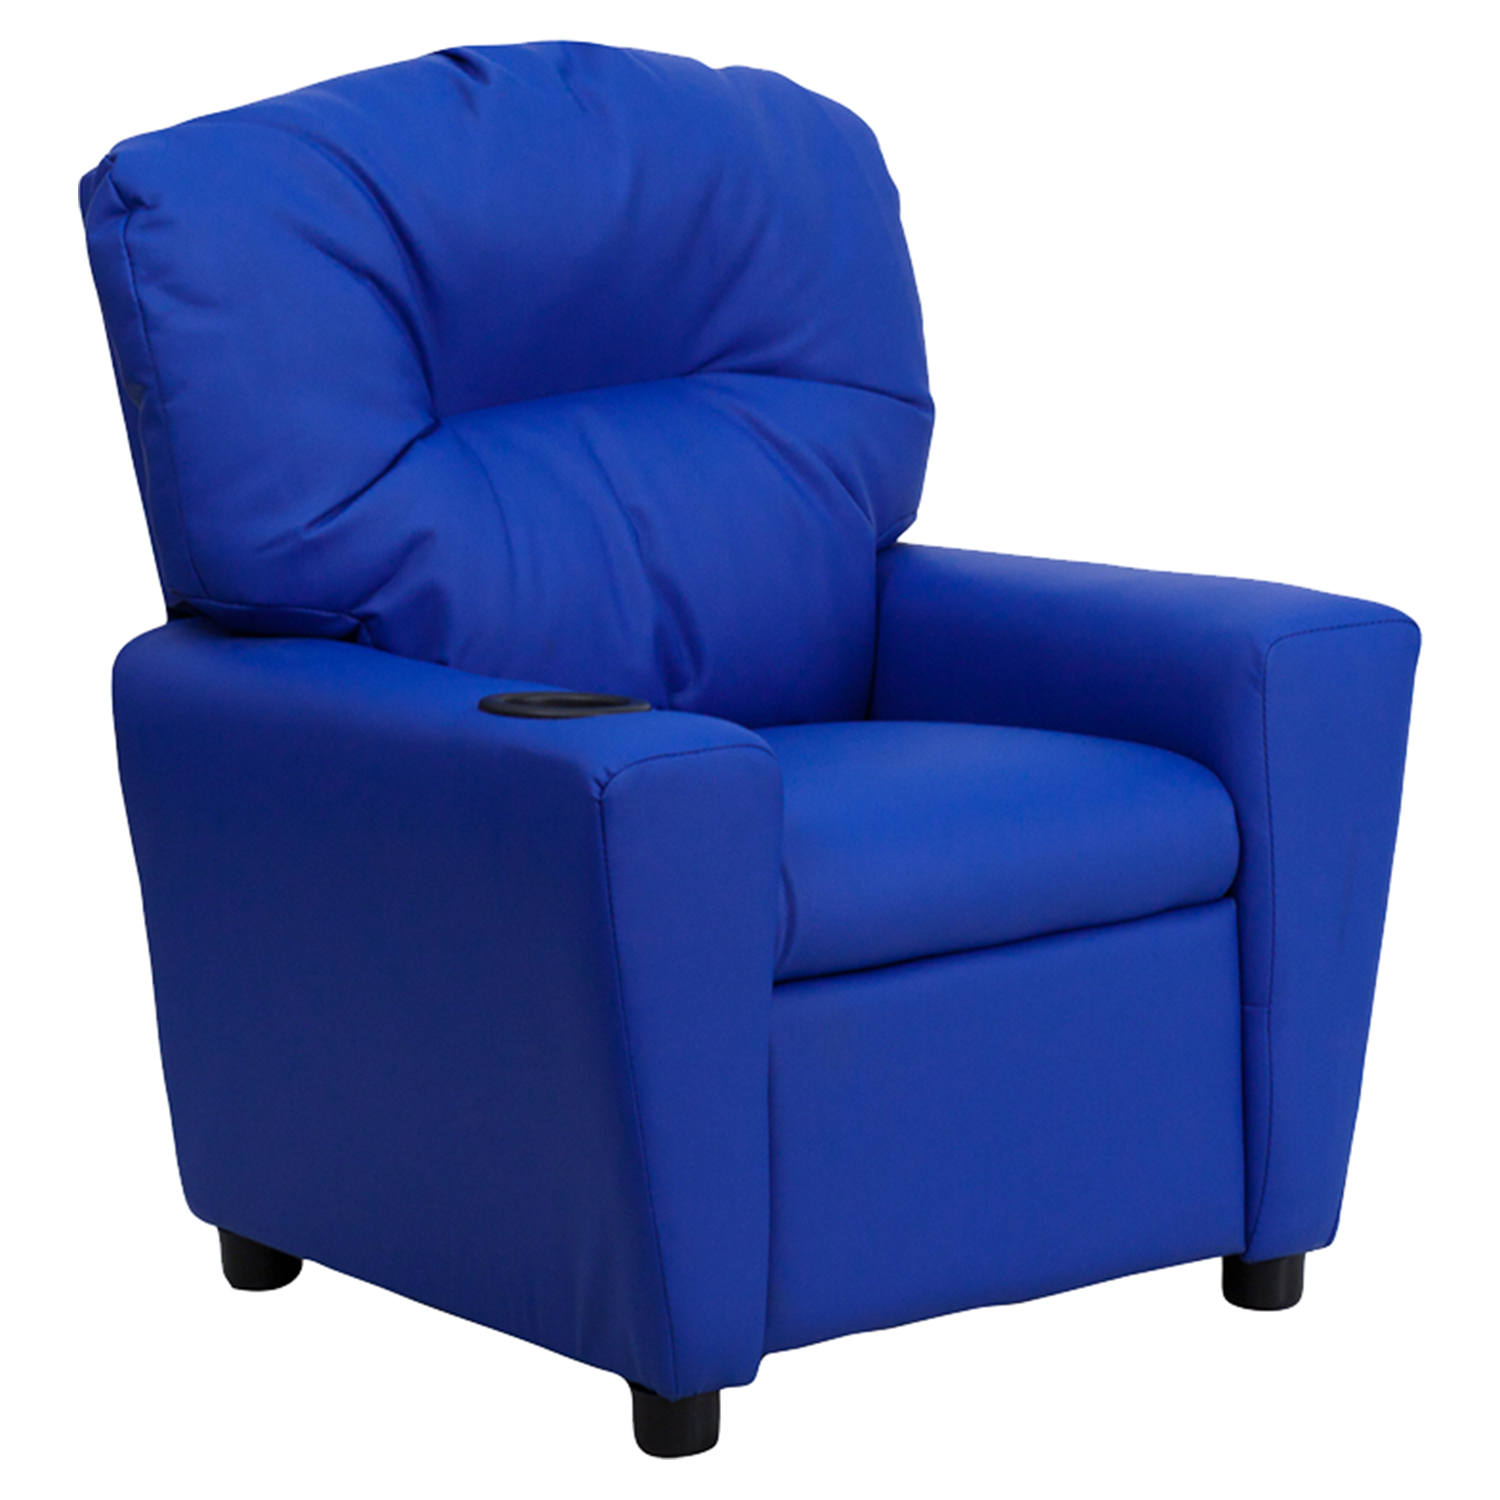 kid recliner chair sand chairs target upholstered kids cup holder blue dcg stores flsh bt 7950